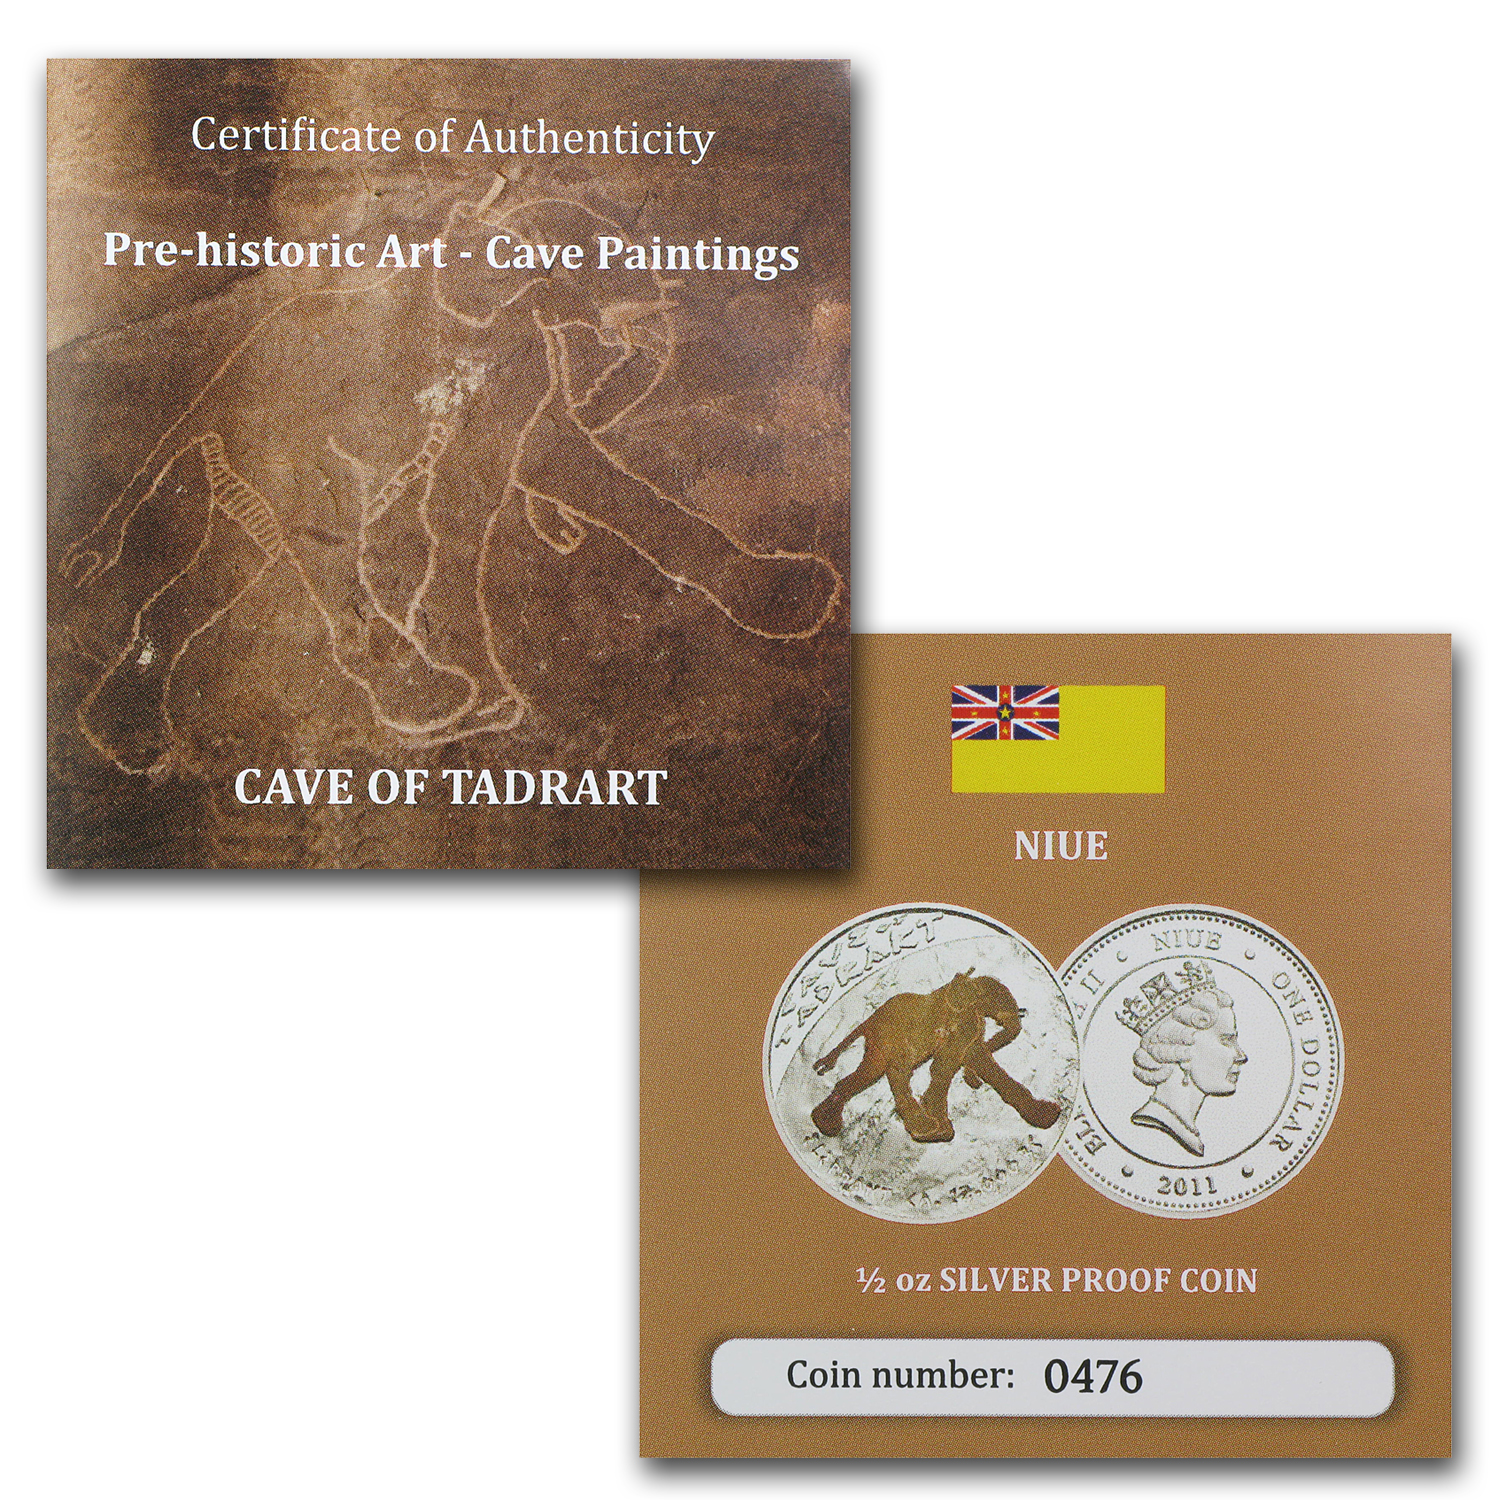 2011 Niue Proof Silver $1 Prehistoric Art Cave Paintings-Elephant